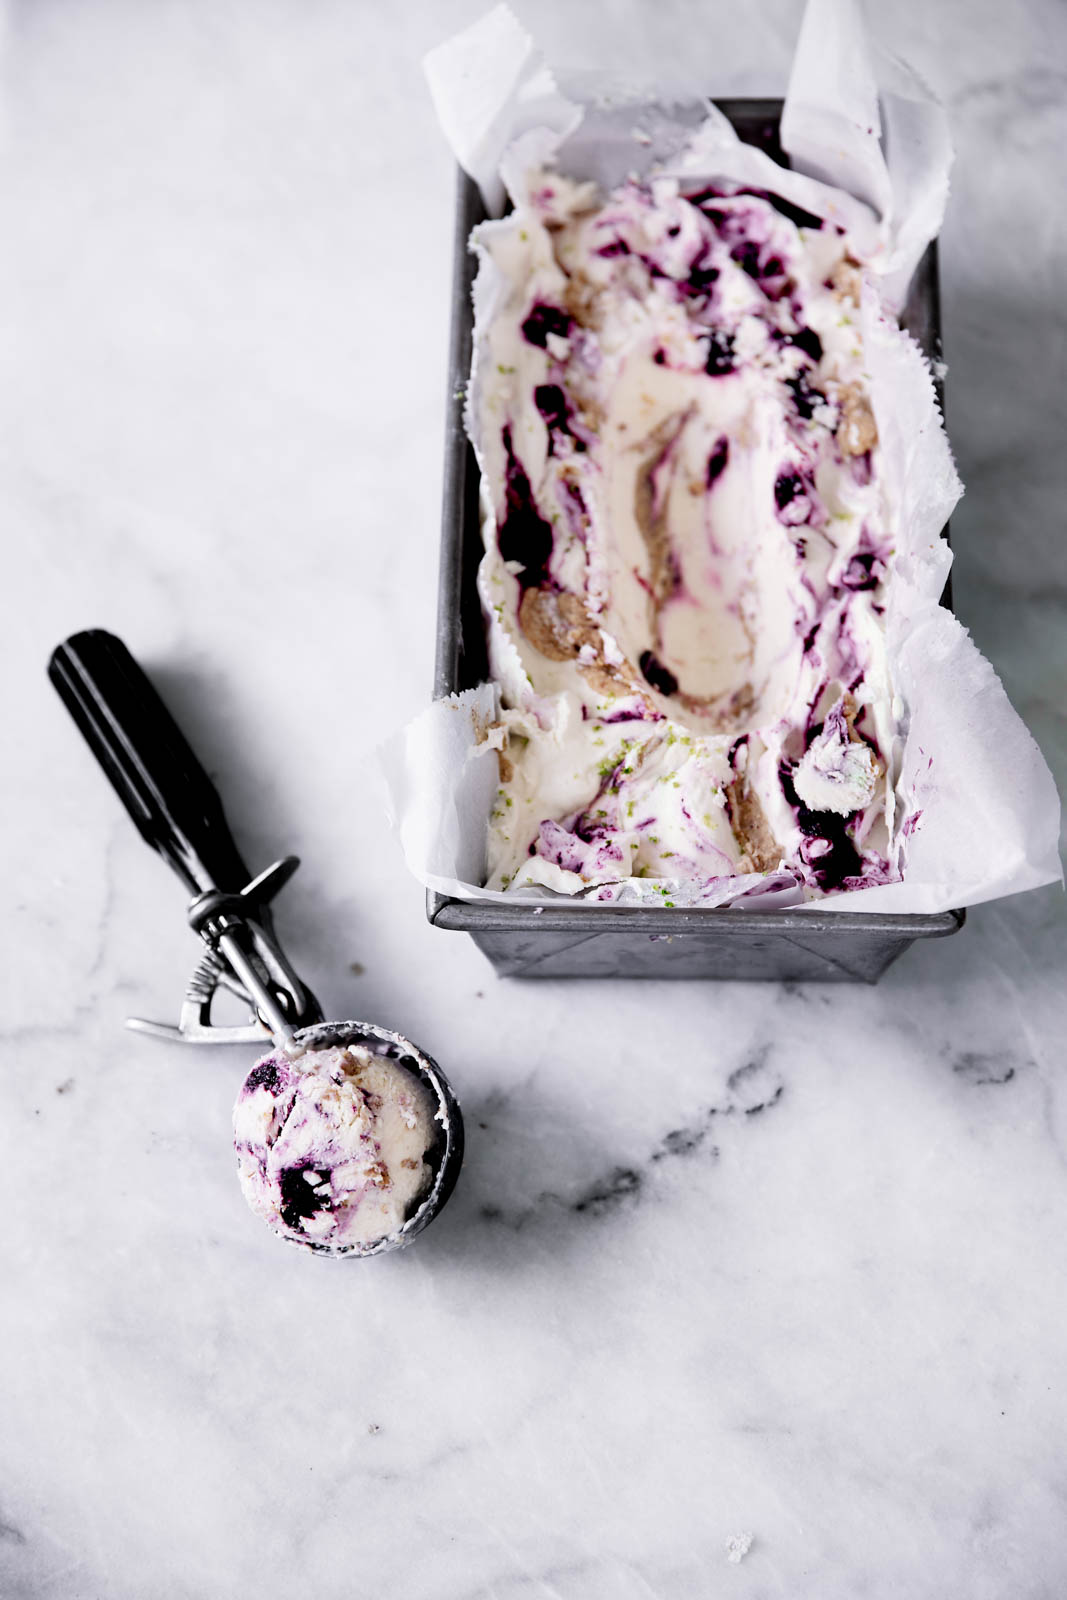 Let's give ice cream season one last hurrah: lime cheesecake ice cream swirled with sautéed lime zested blueberries and almond butter. DROOL.